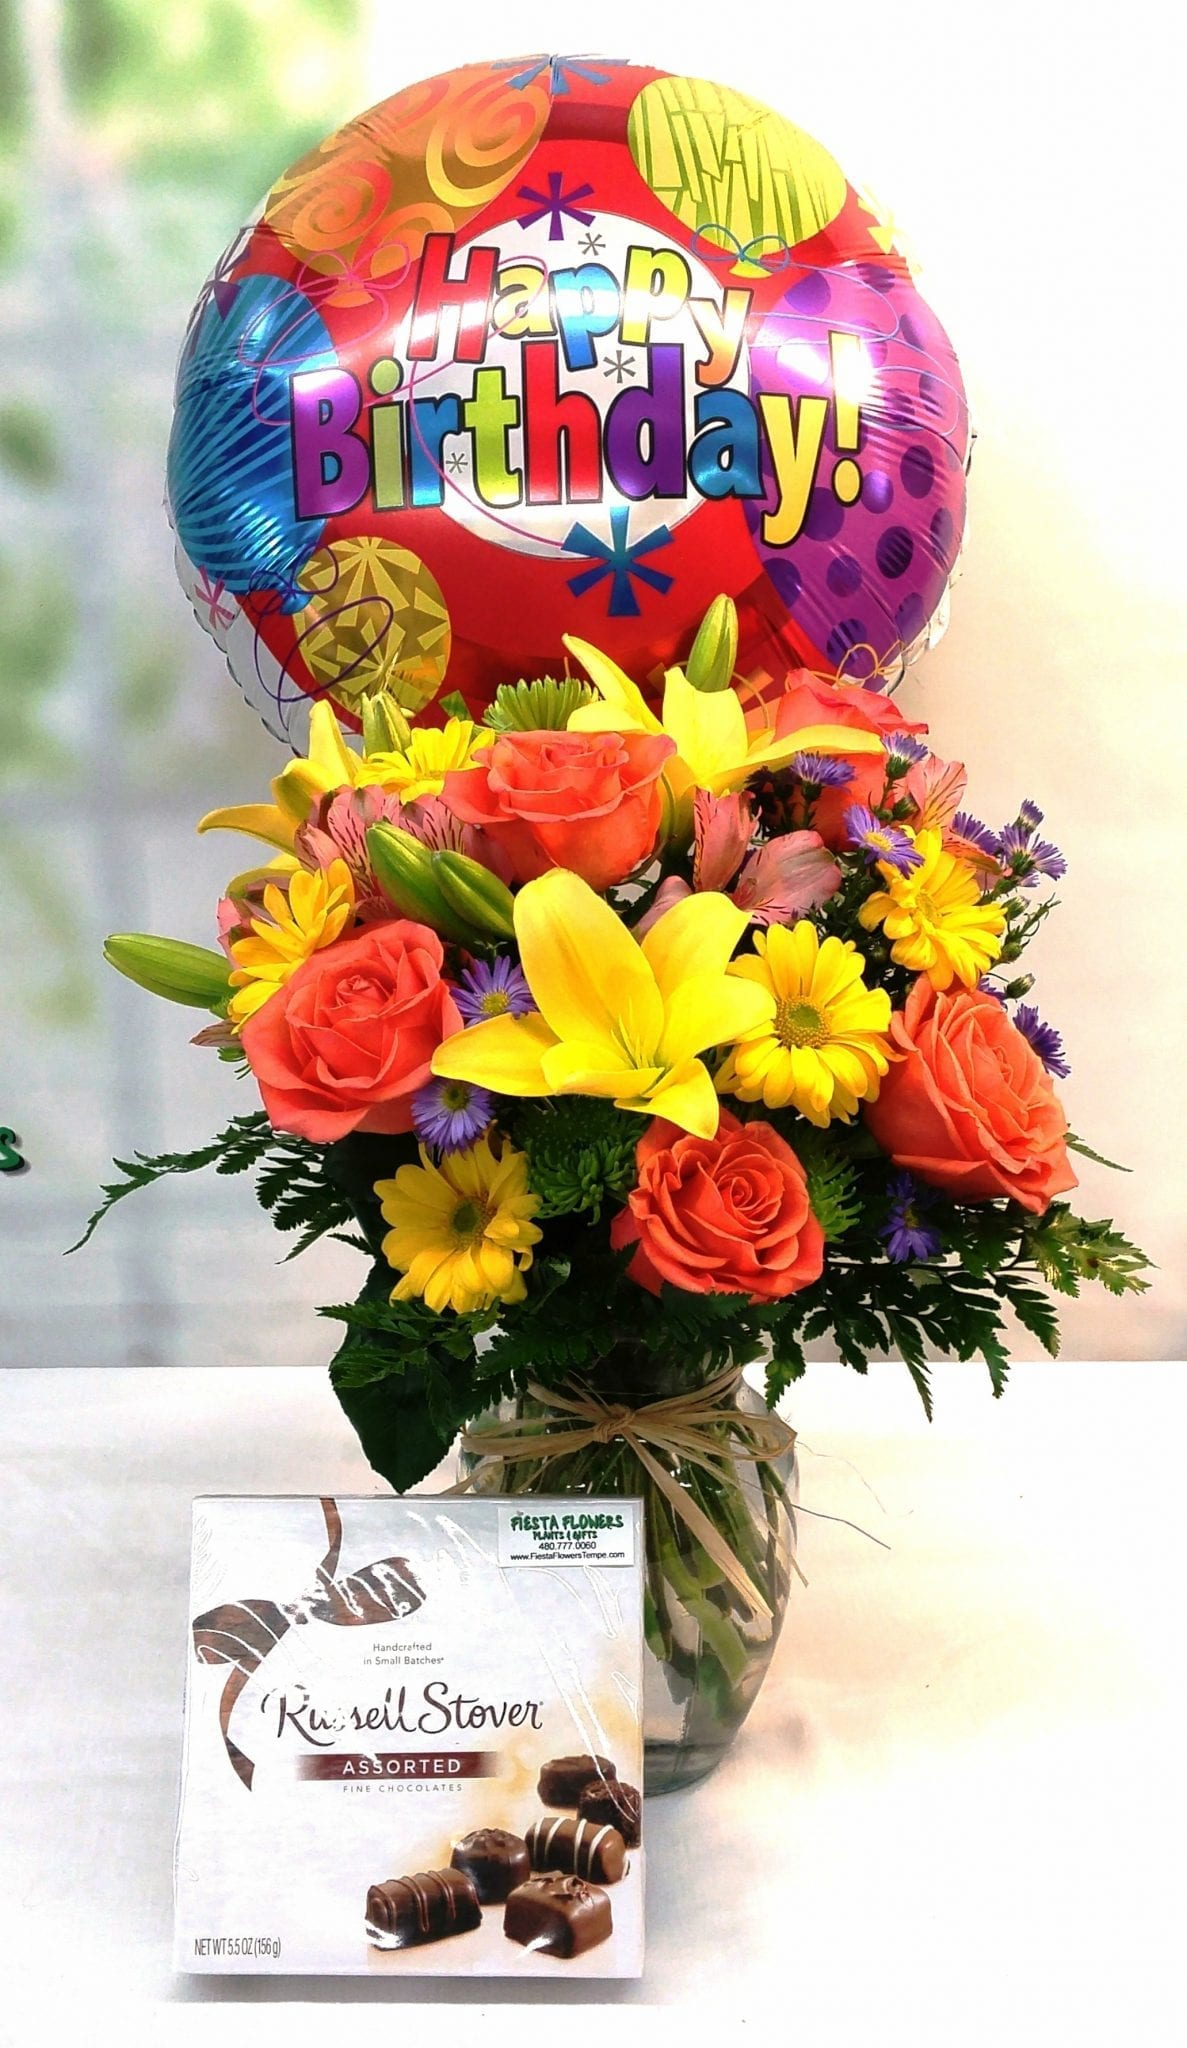 SAME DAY DELIVERY Happy Birthday Premium Bundle Fiesta Flowers Plants &